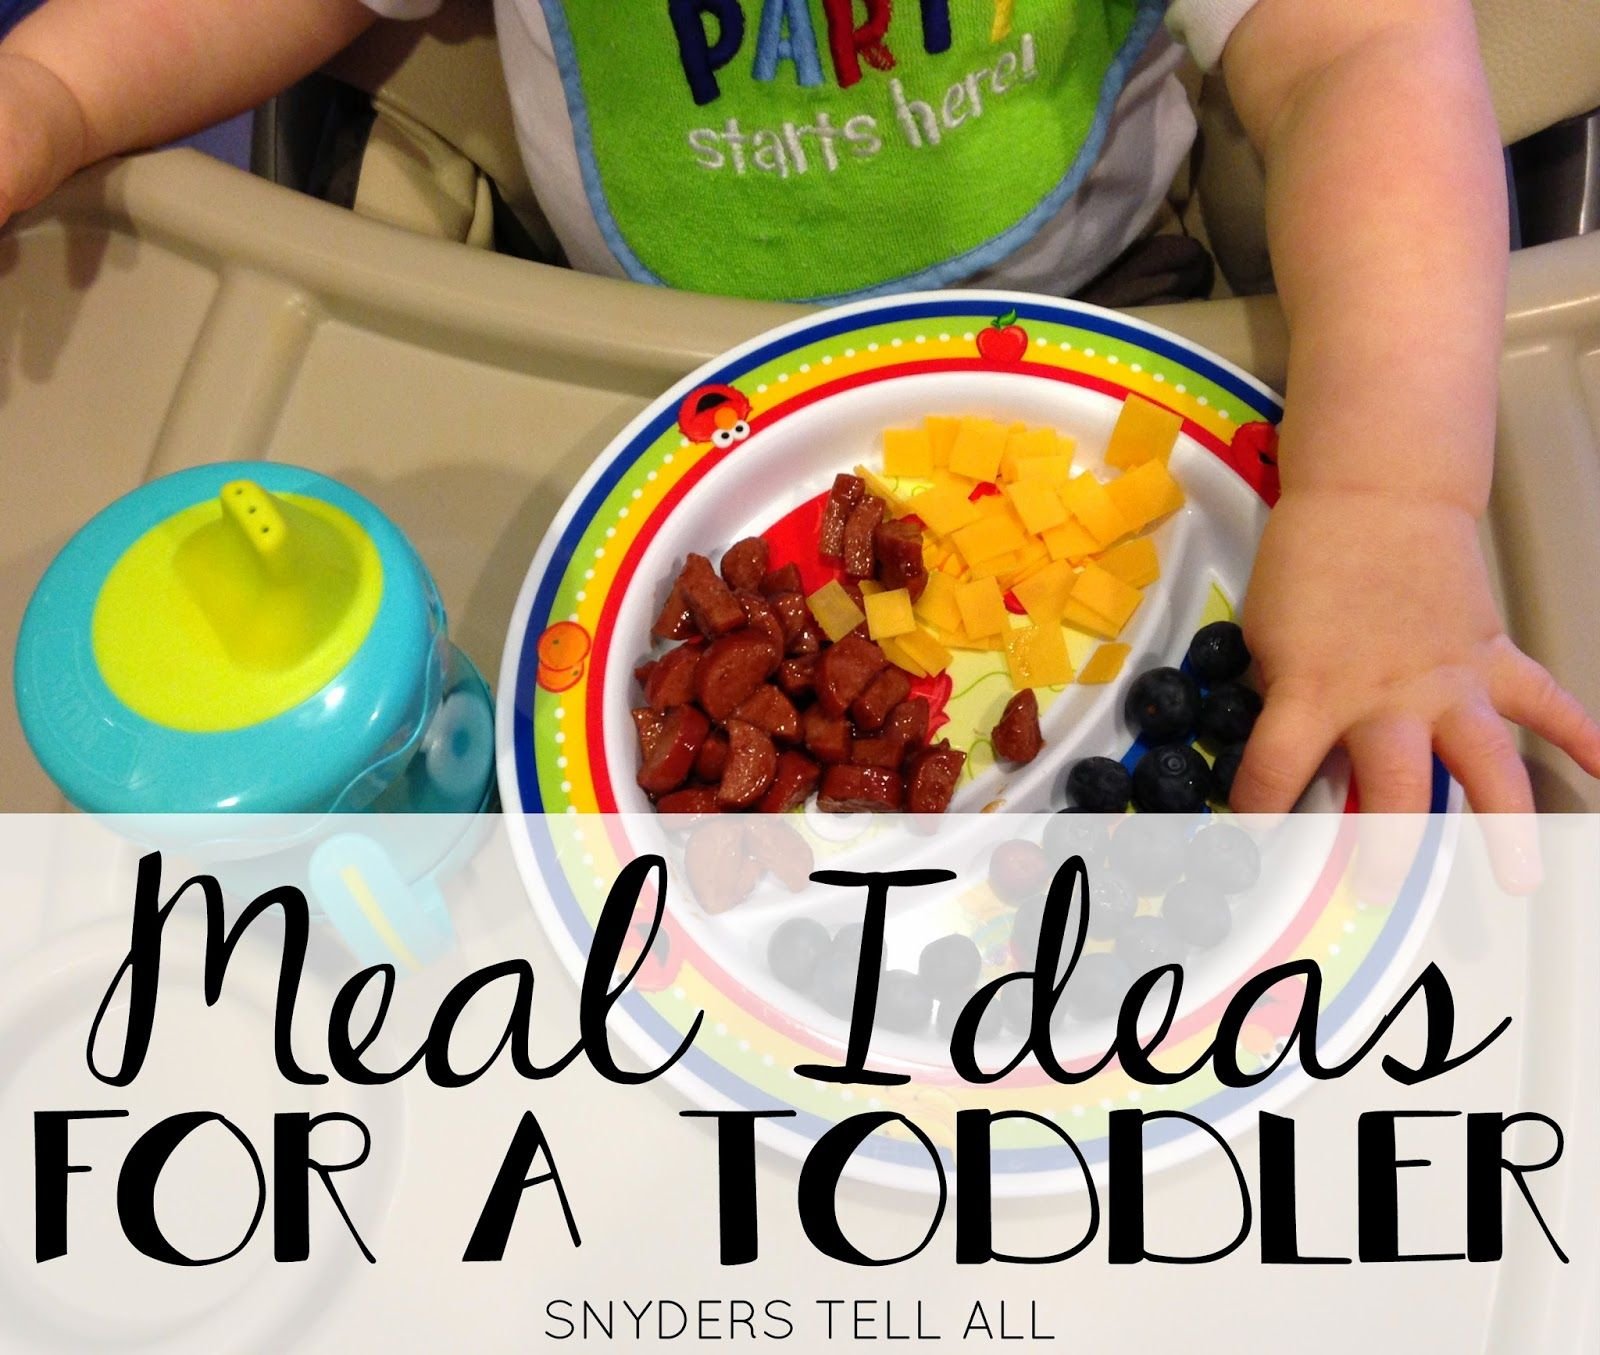 toddler meal ideas. feeding a toddler. food for a 2 year old, 3 year